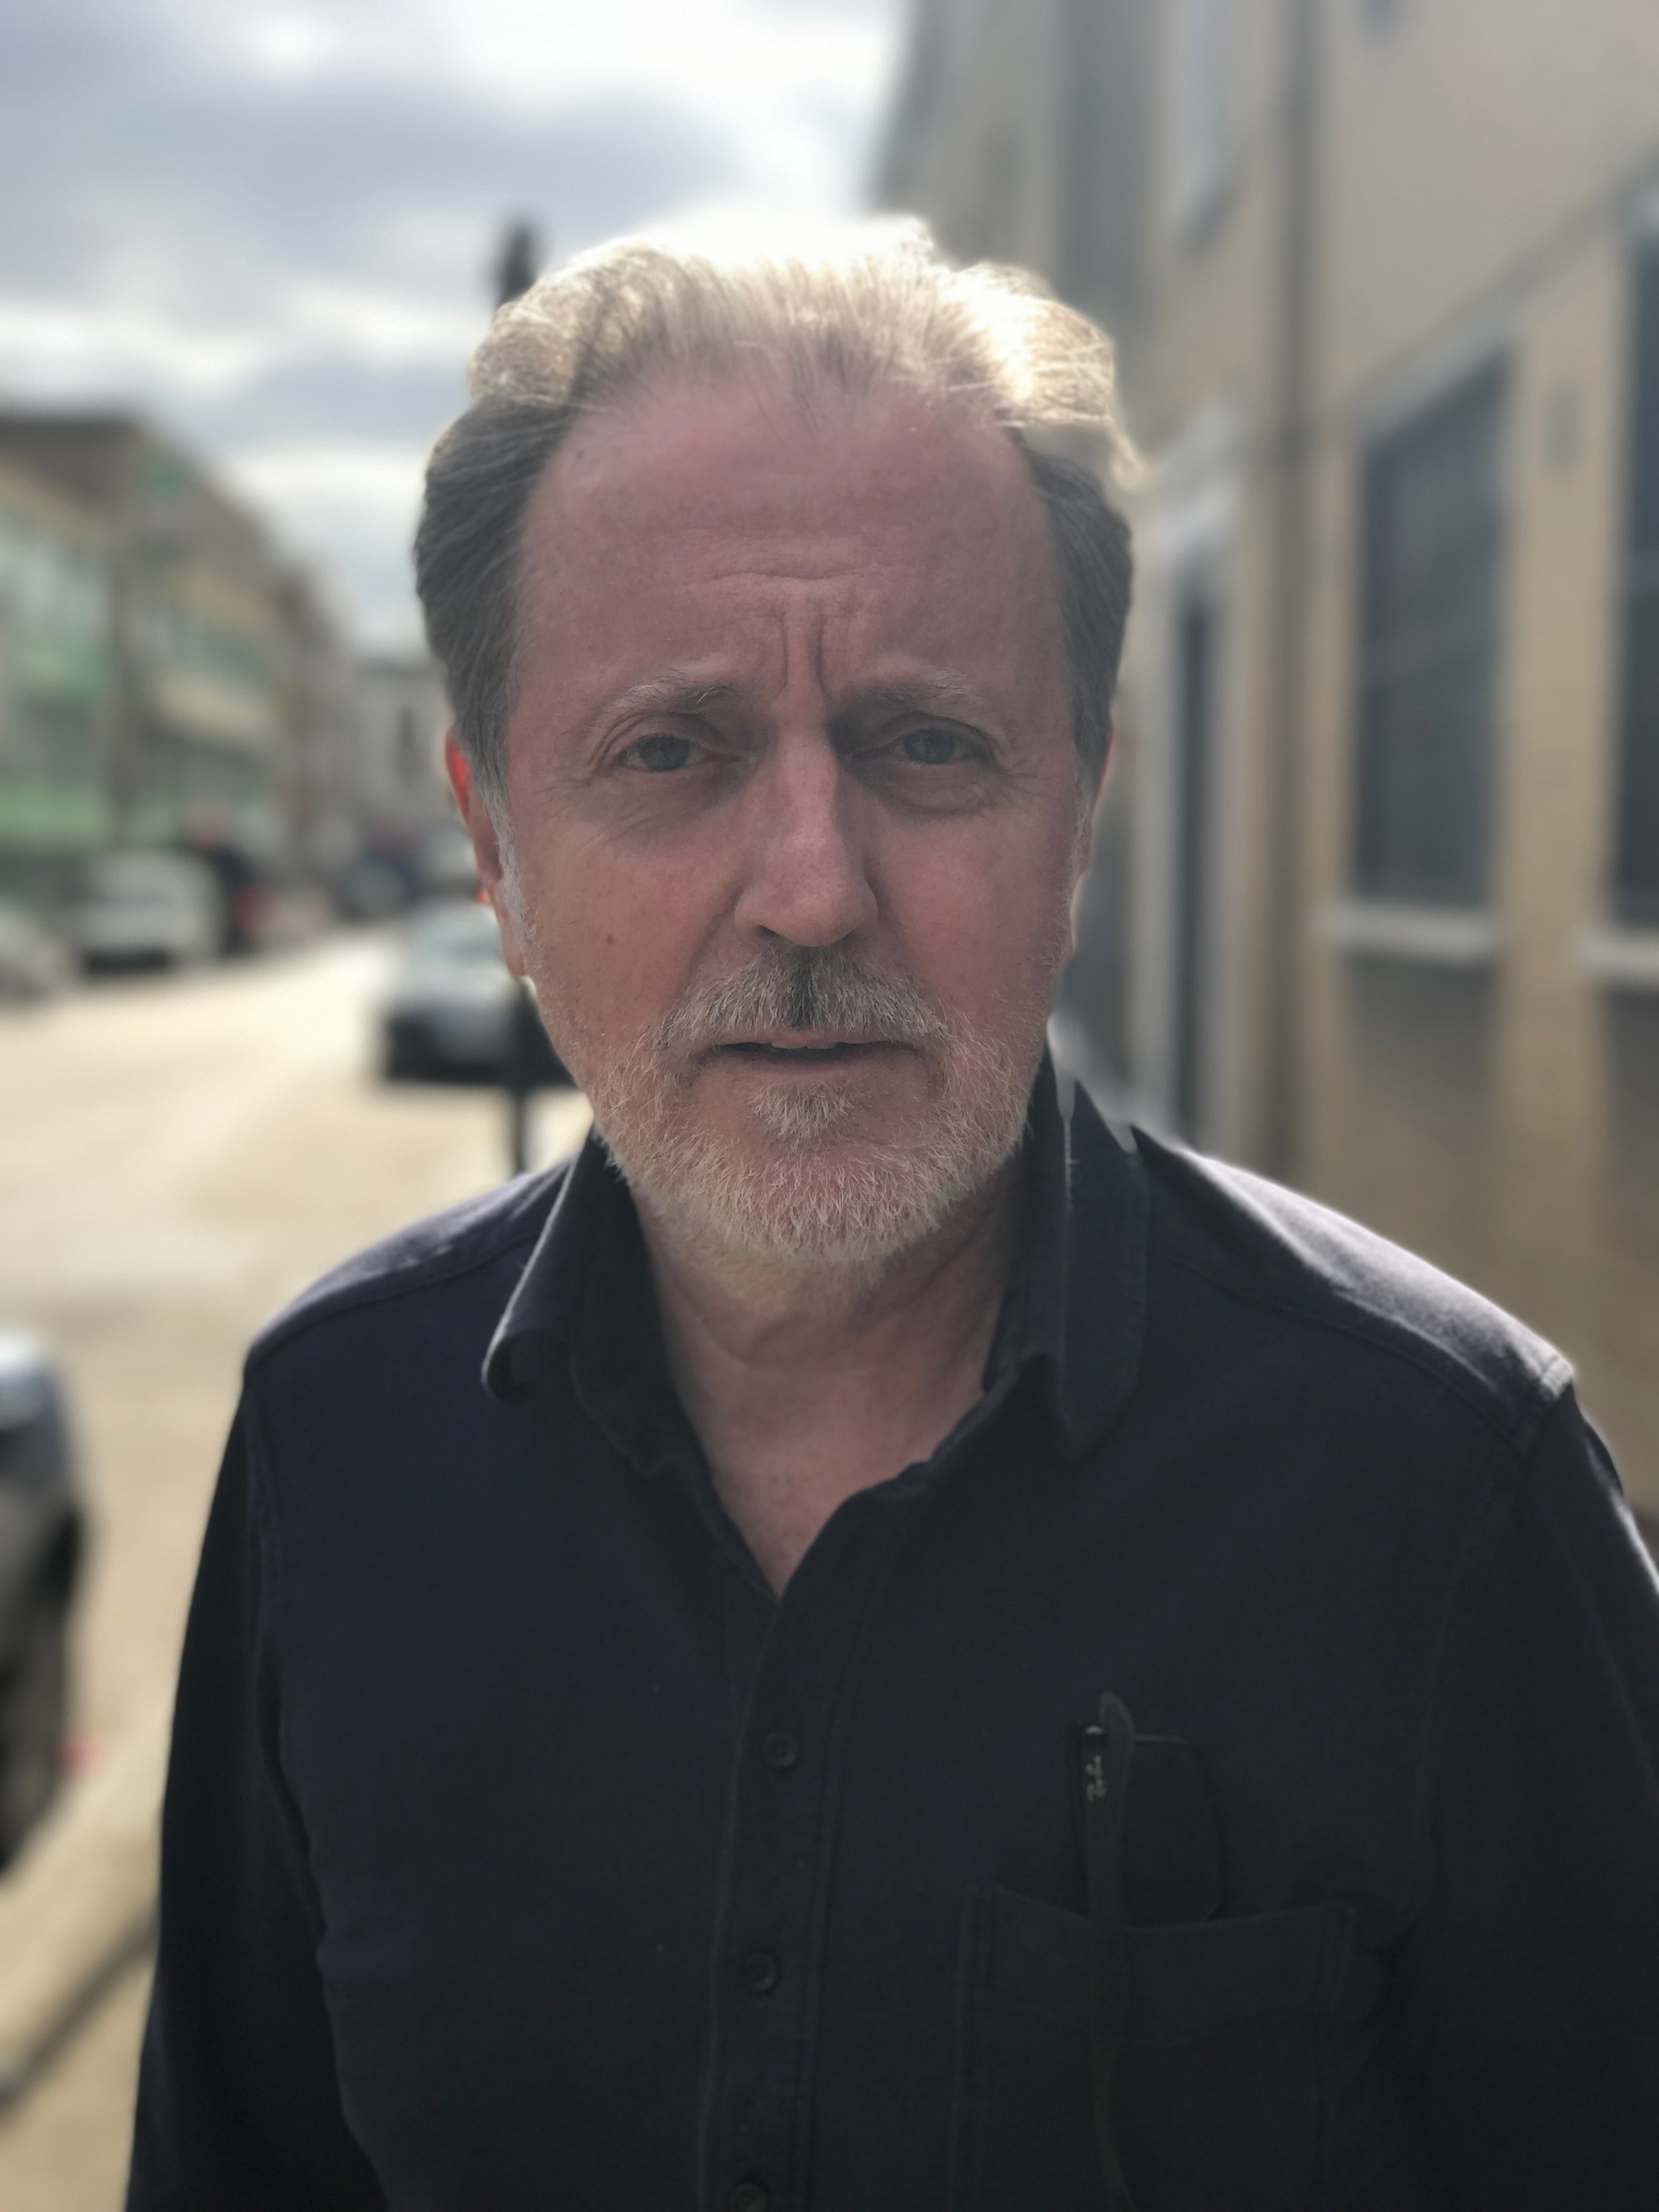 Jeff Allen - Director   Jeff started his career as a blues/rock session drummer for the likes of East of Eden, Babe Ruth, Snowy White, Bonnie Tyler, Mick Taylor and Van Morrison. Jeff started our facility which has been servicing the music industry since the 1970's.